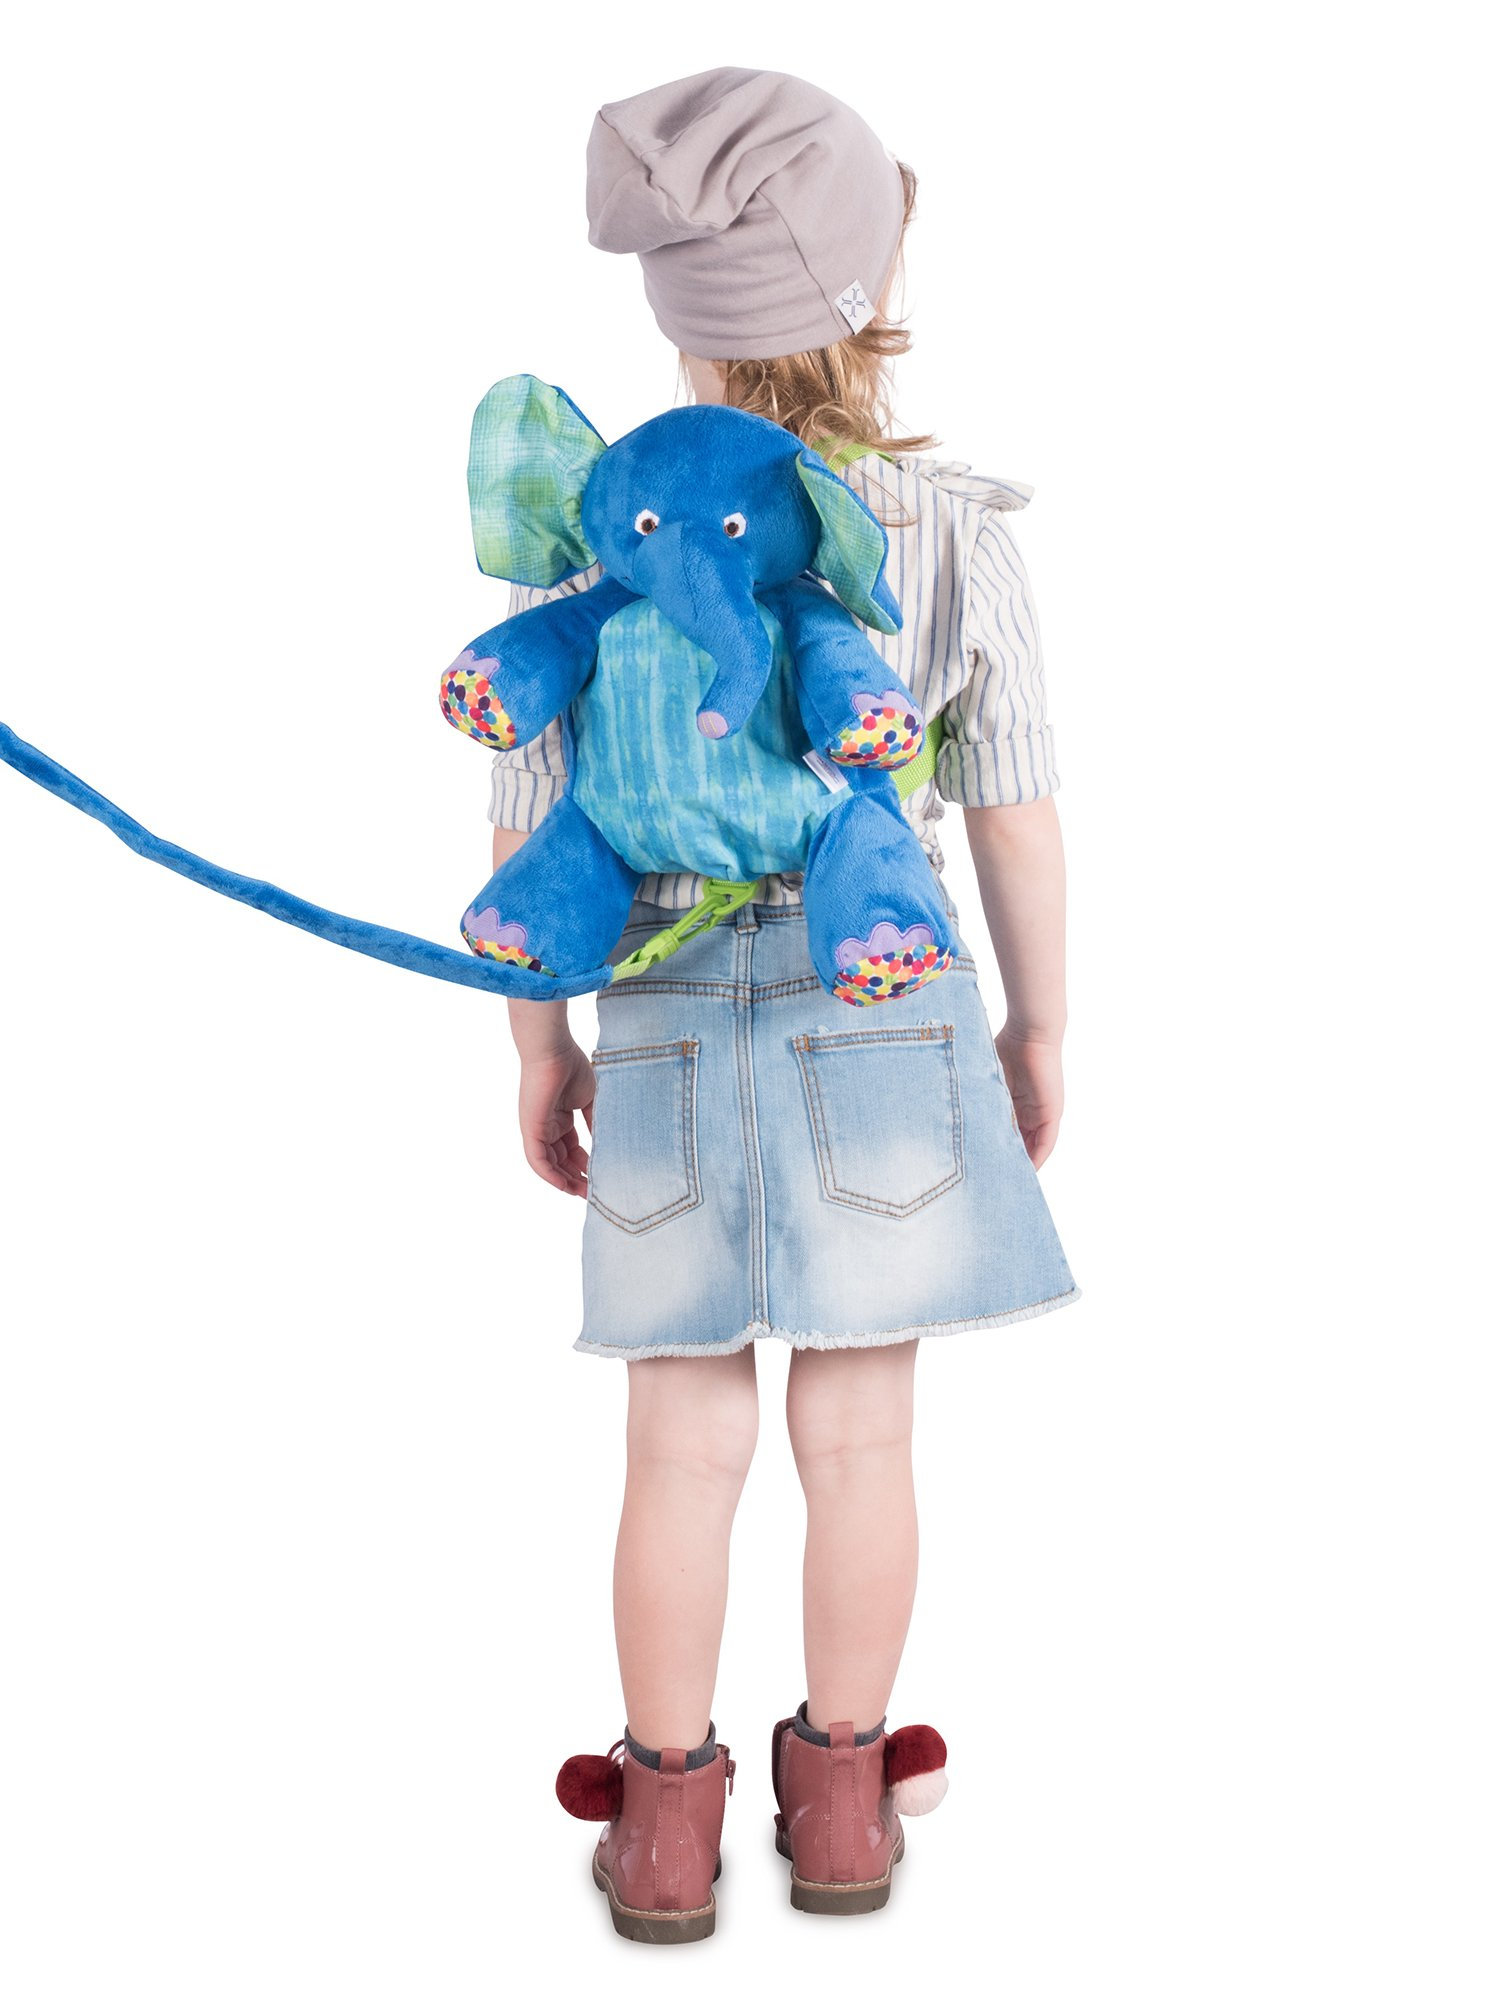 Eric Carle The Very Hungry Caterpillar Backpack Harness, Elephant, Polyester, Elephant Backpack, Children's Backpack, Blue